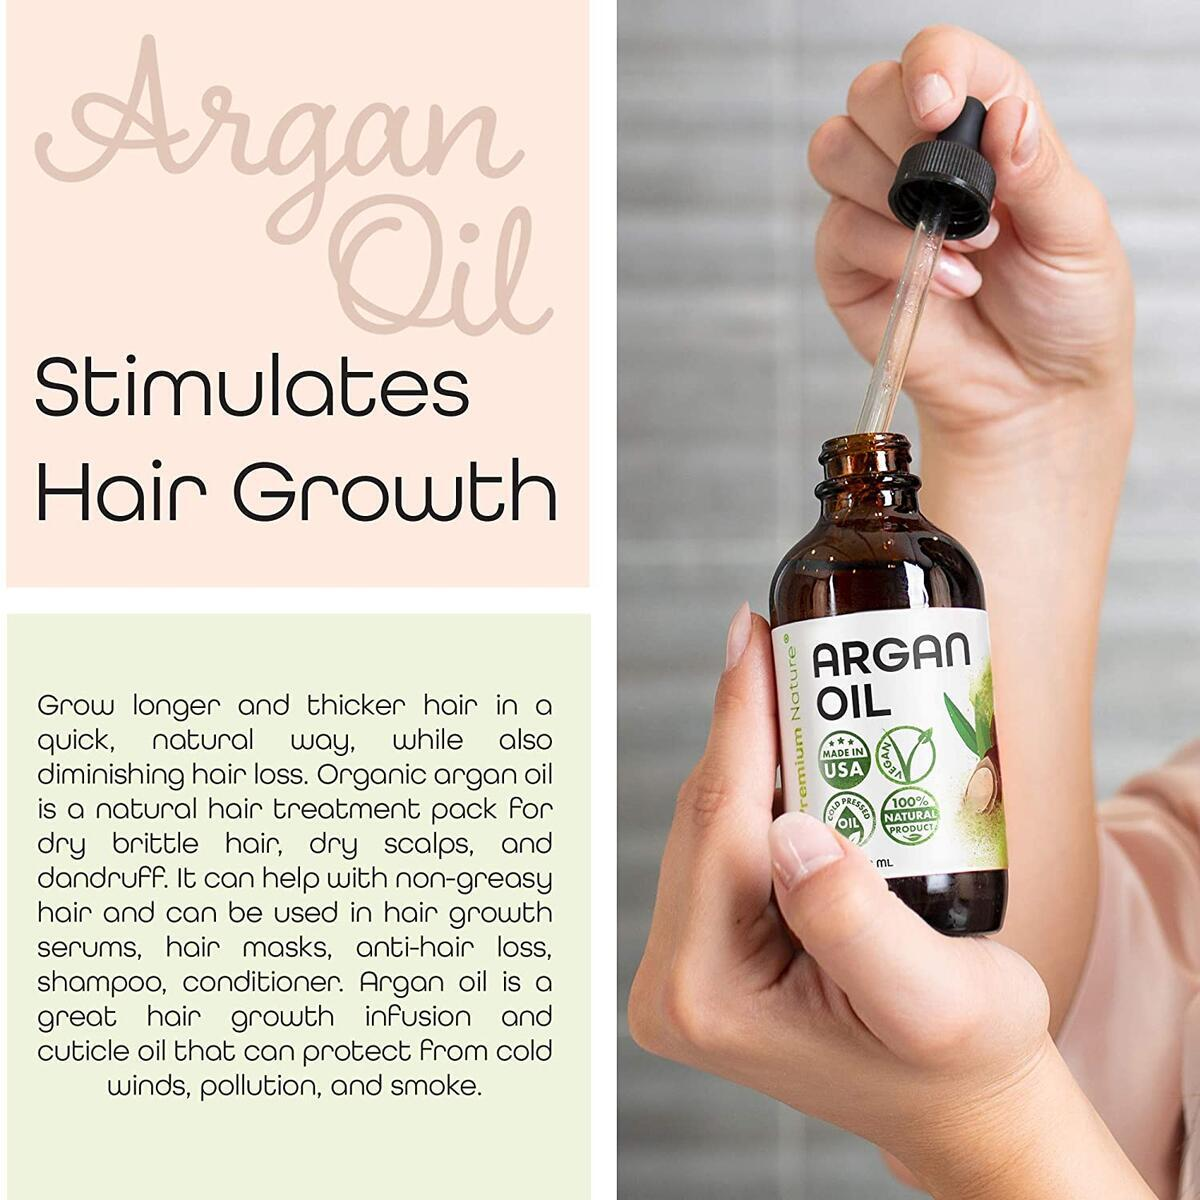 Argan Oil Organic, Virgin, 100% Pure, Cold Pressed Argon Oil Serum For Hair Stimulate Growth for Dry and Damaged Hair. Argan Oil for Skin Body Moisturizer. Nails Protector 4 oz